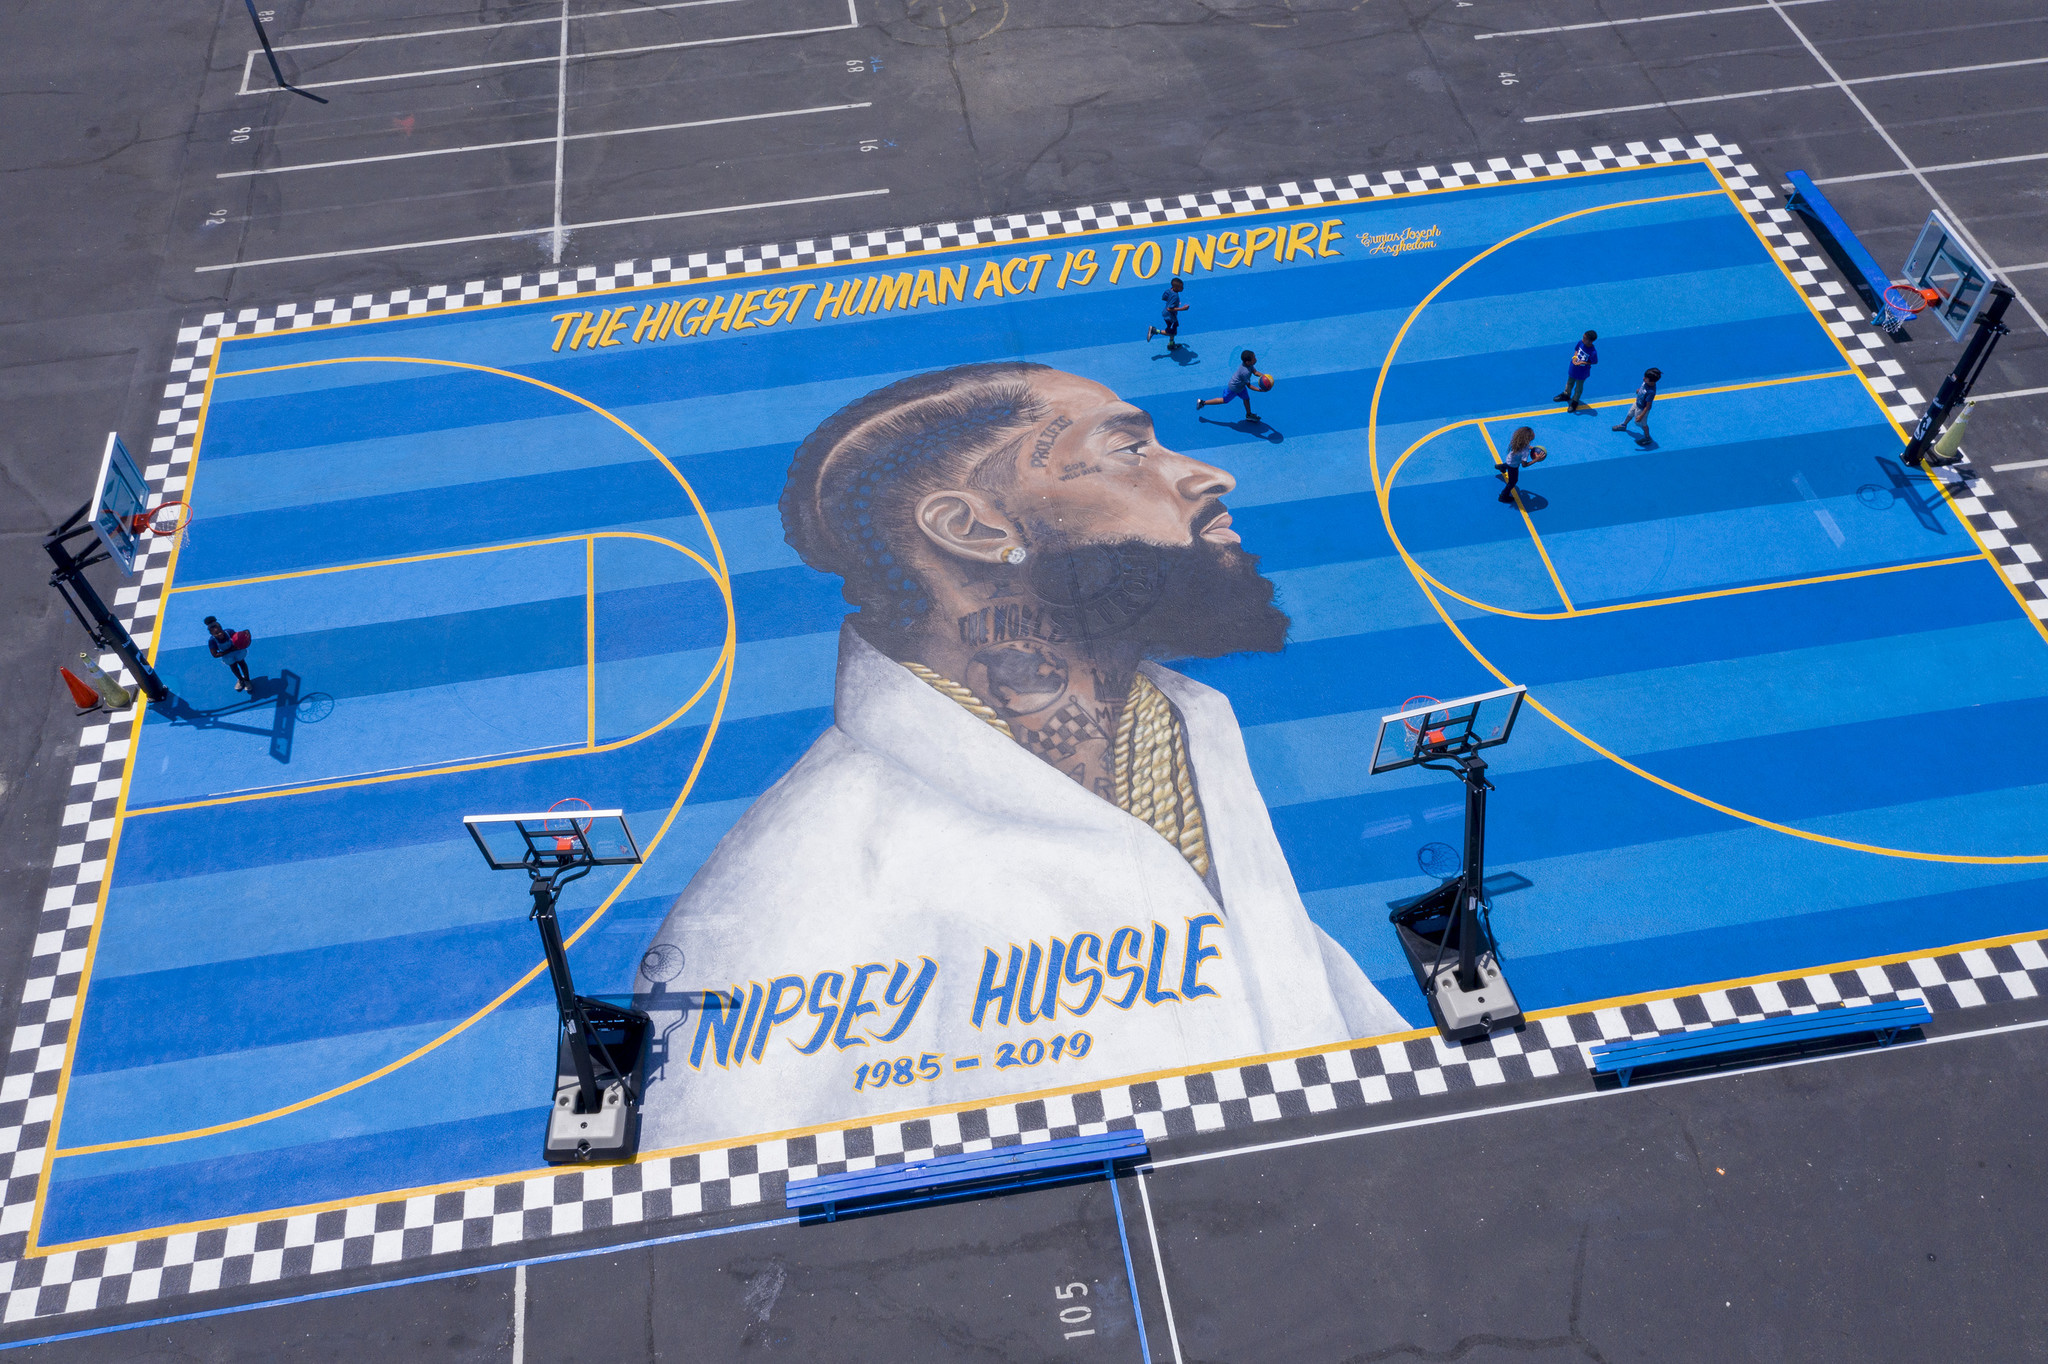 Basketball court with Nipsey Hussle mural